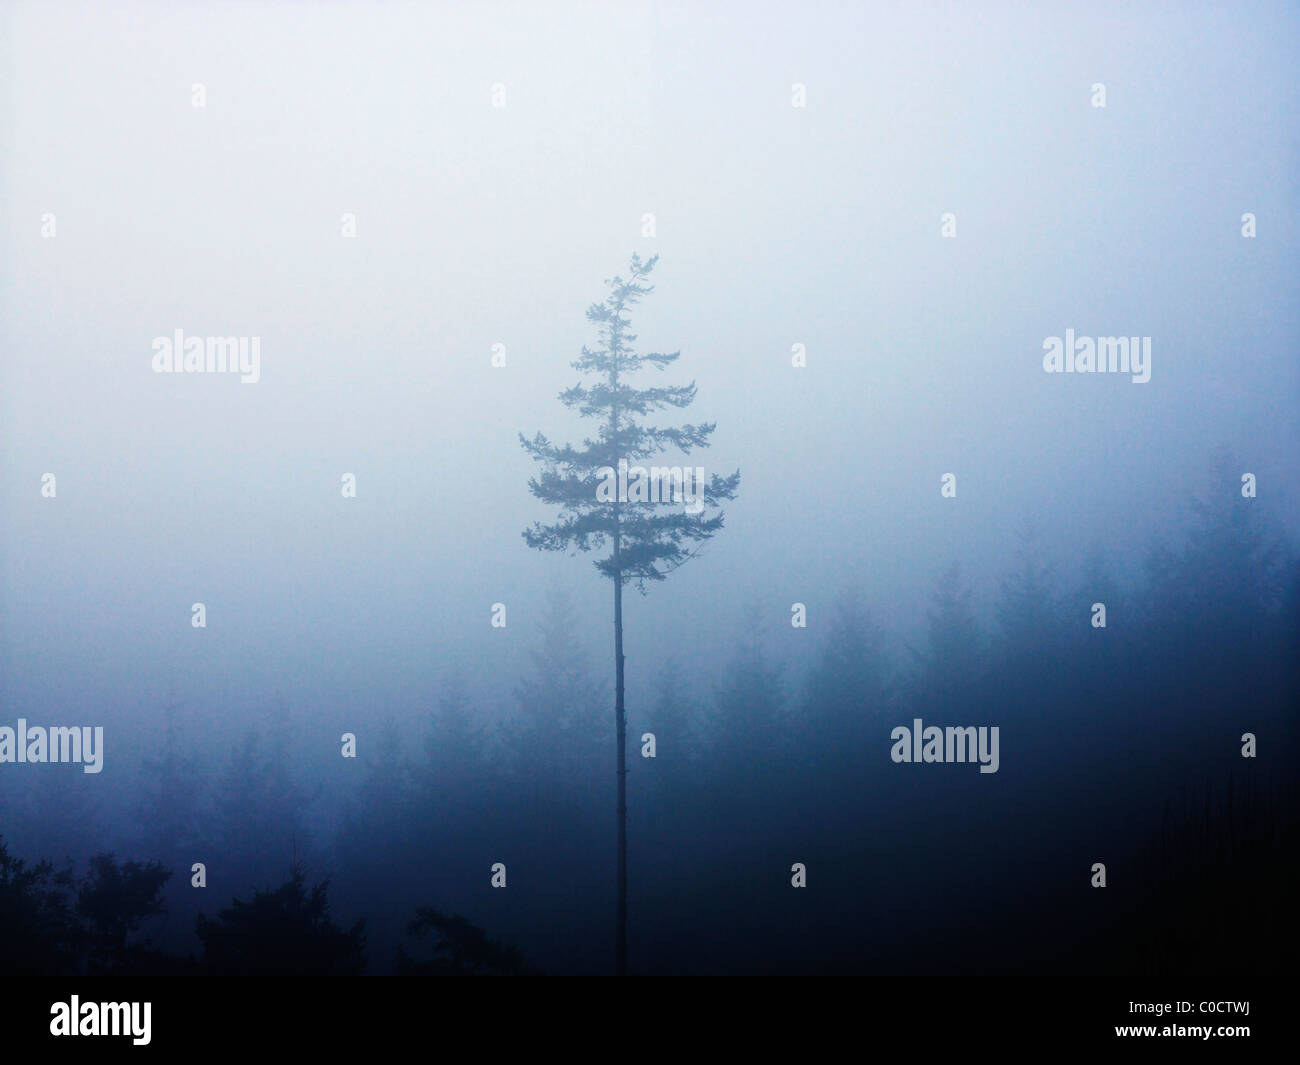 A tall singular tree standing above a forest of fur trees. - Stock Image